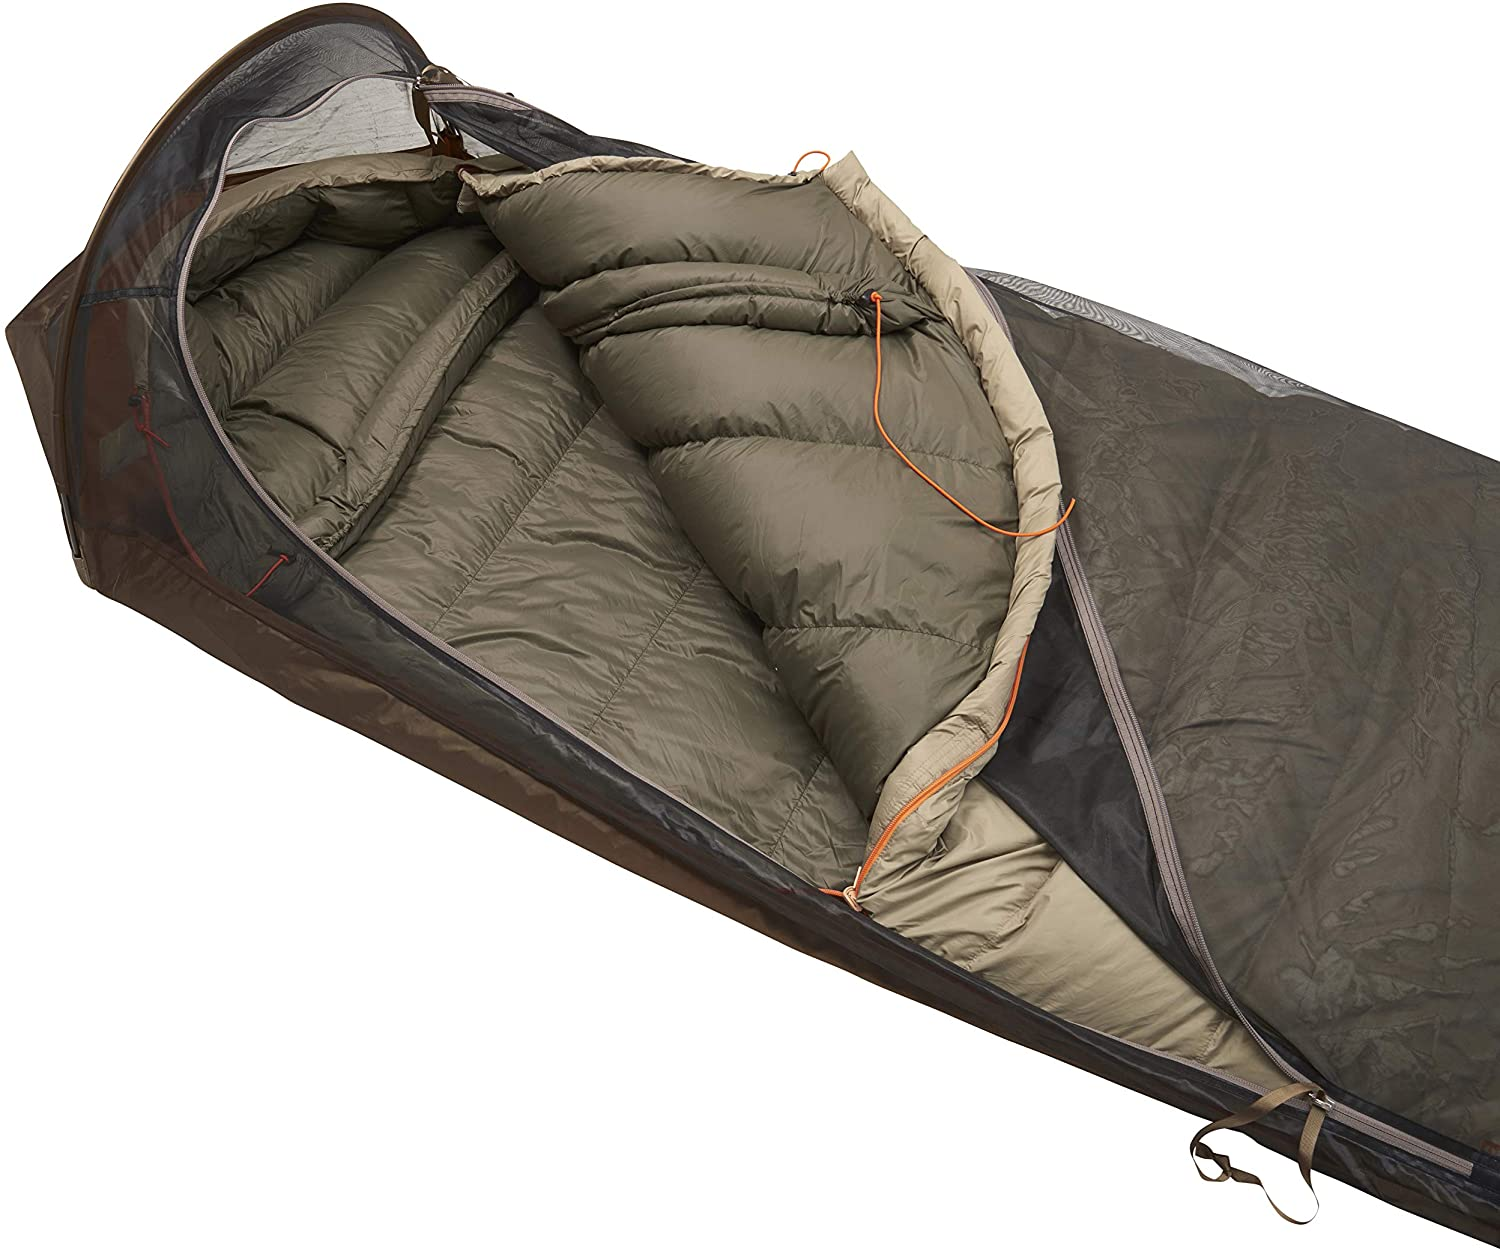 slumberjack contour bivy lightweight backcountry camping